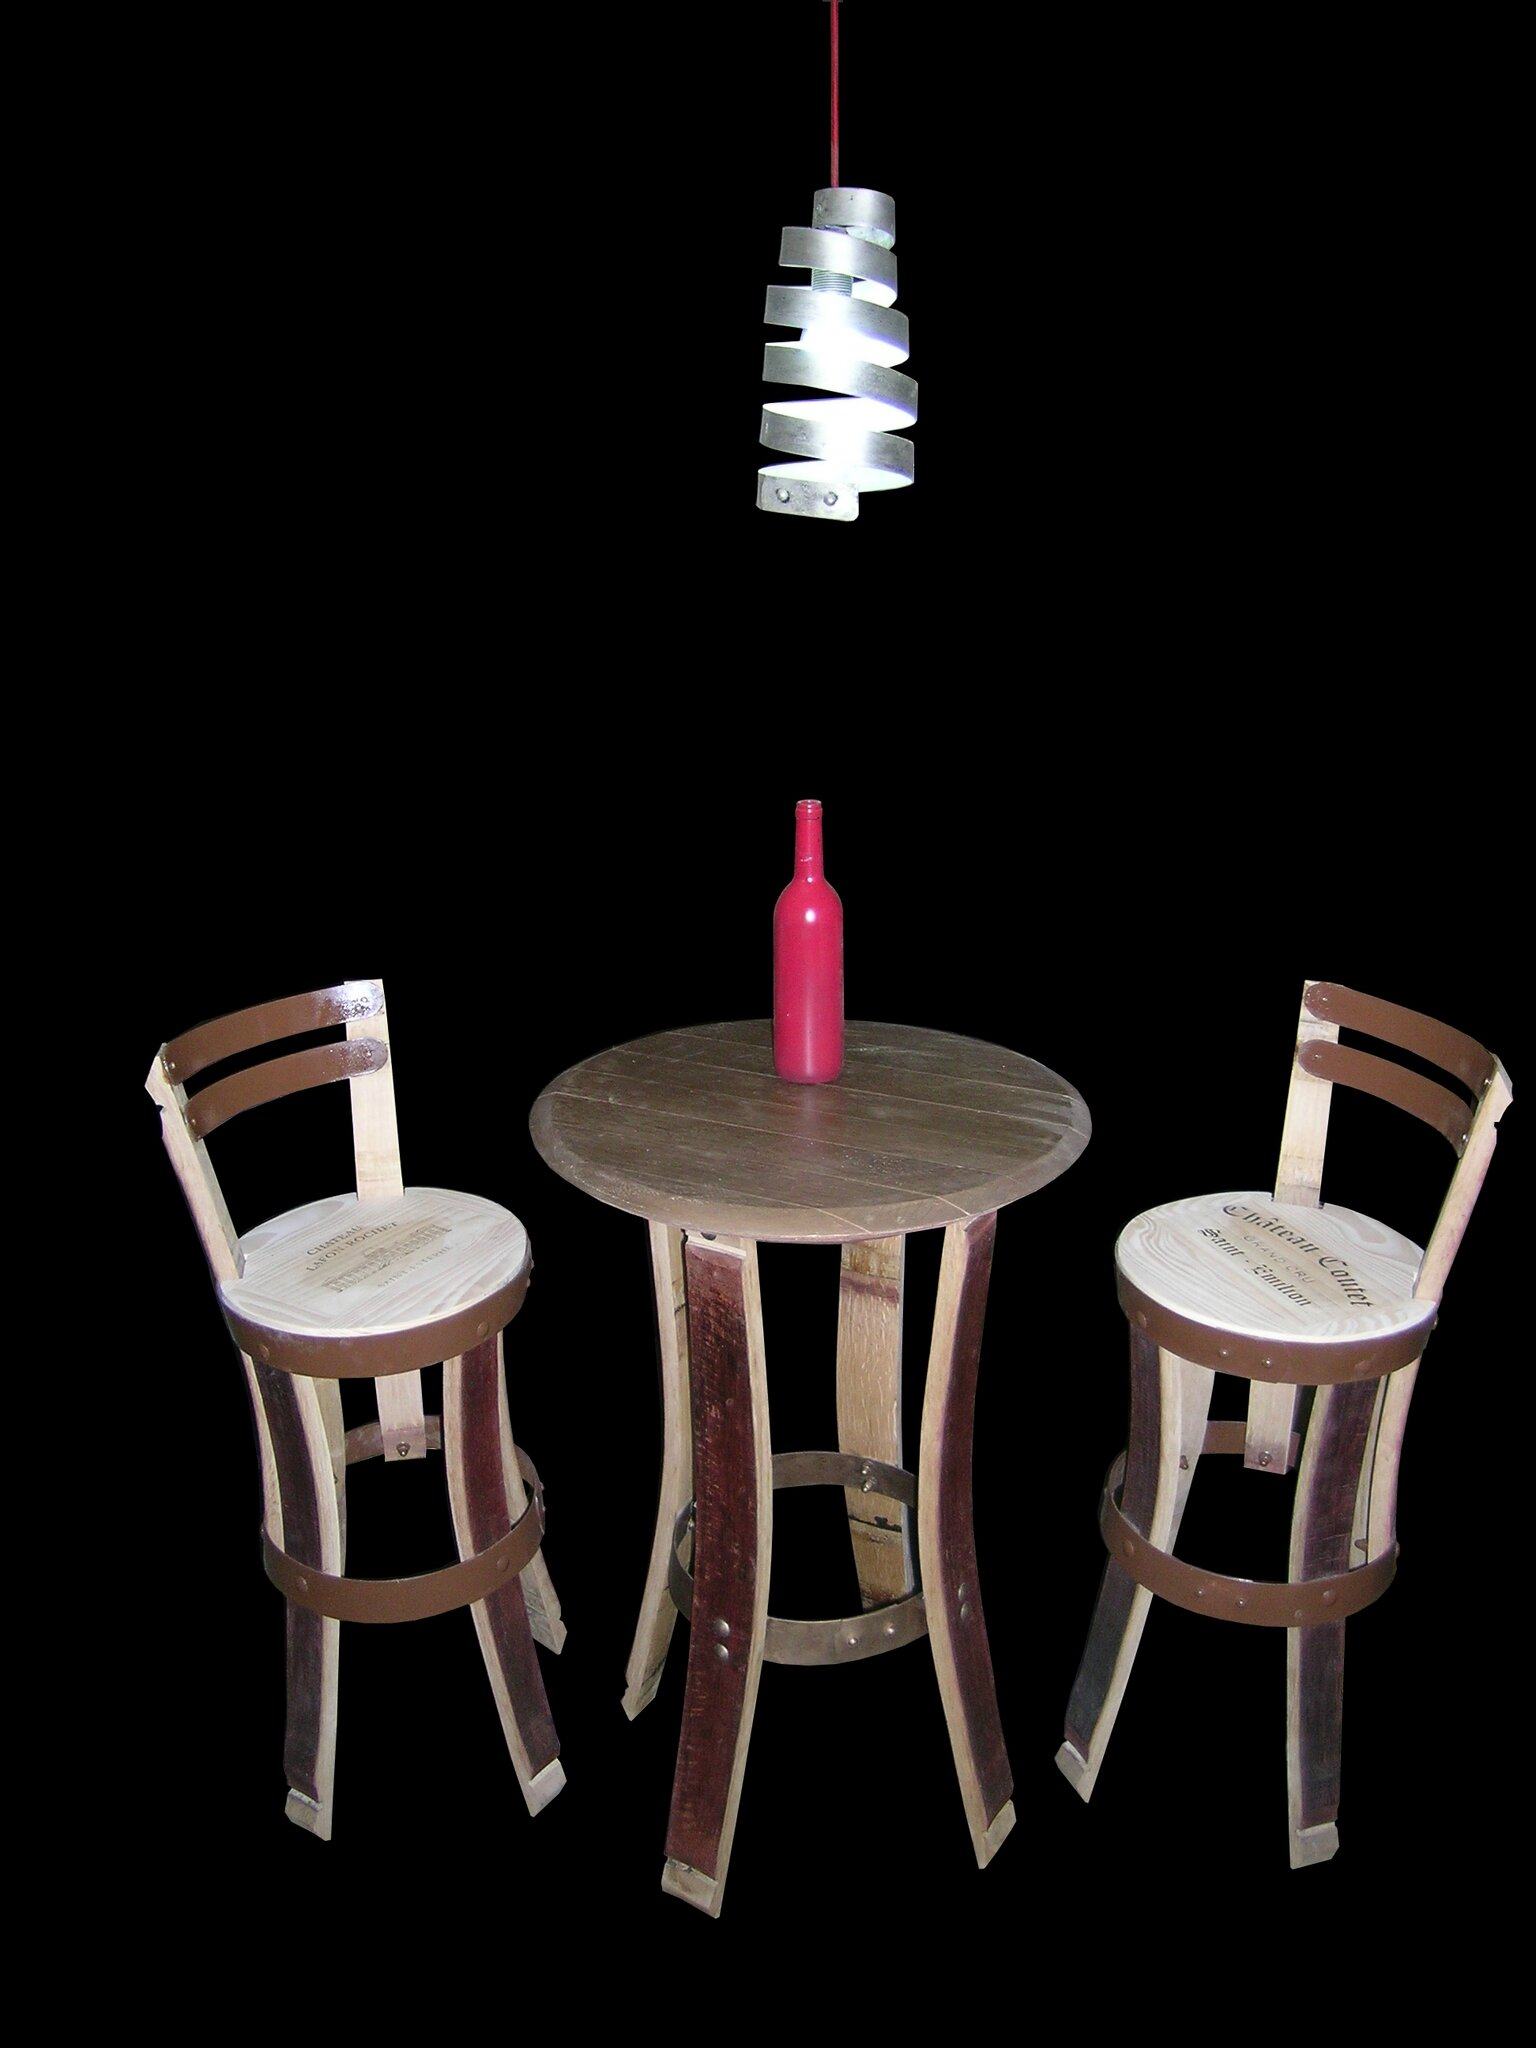 mobilier pour cave vins restaurant bar vins bistrot. Black Bedroom Furniture Sets. Home Design Ideas